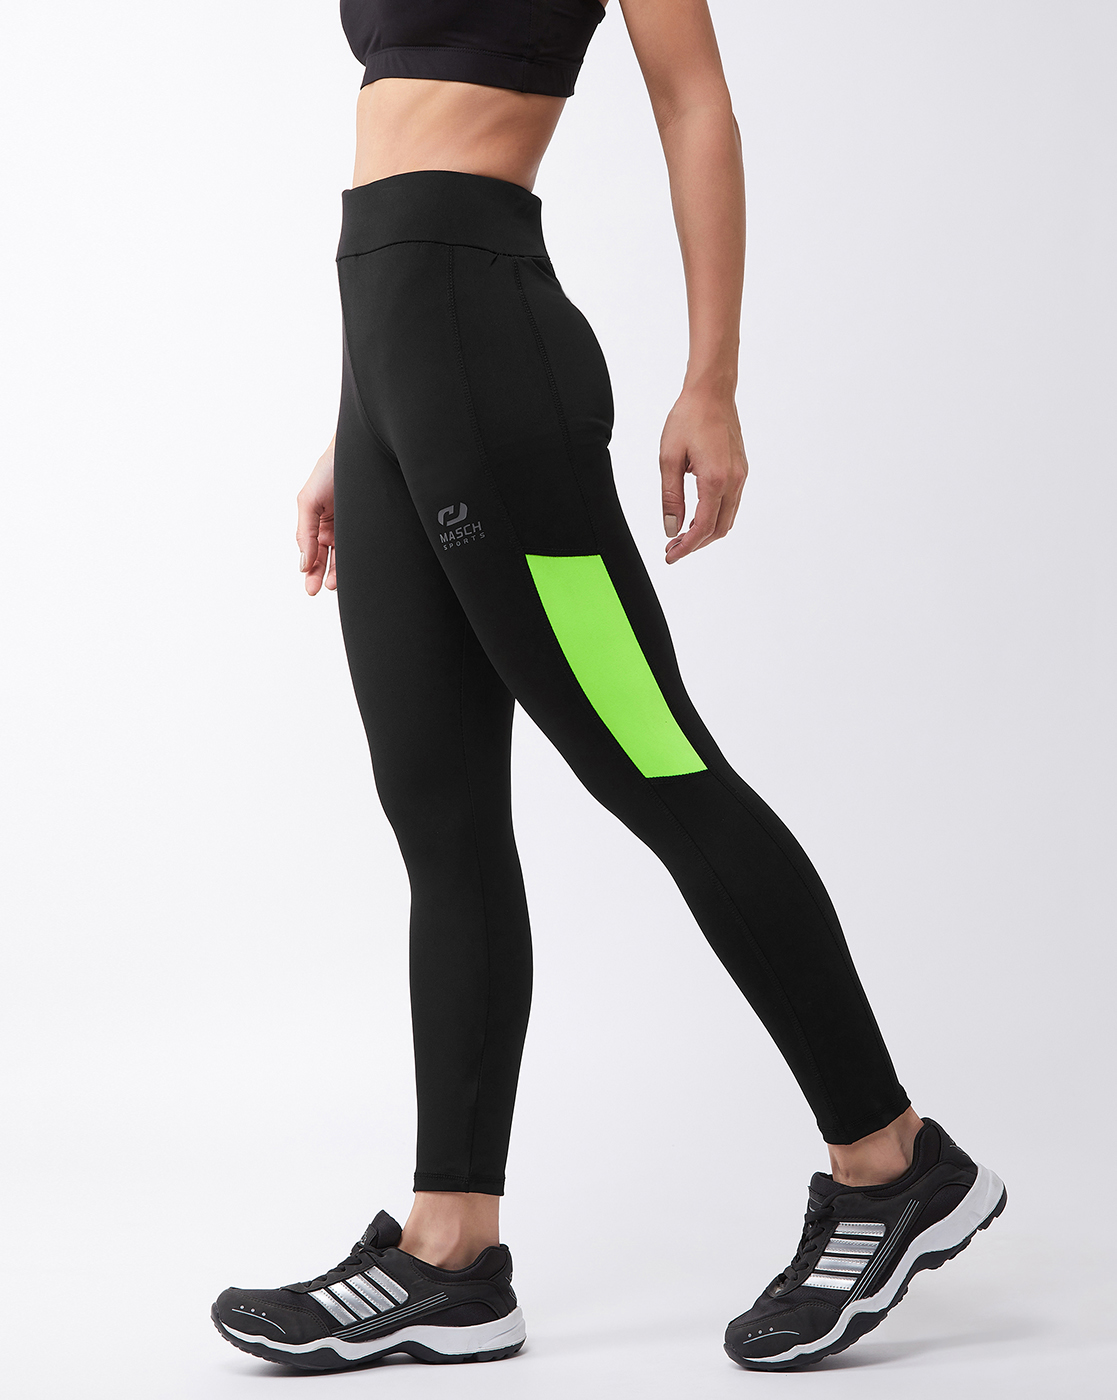 Masch Sports   Masch Sports Women's Black Solid Sports Tights with Colour Block Fluorescent Neon Side Panel